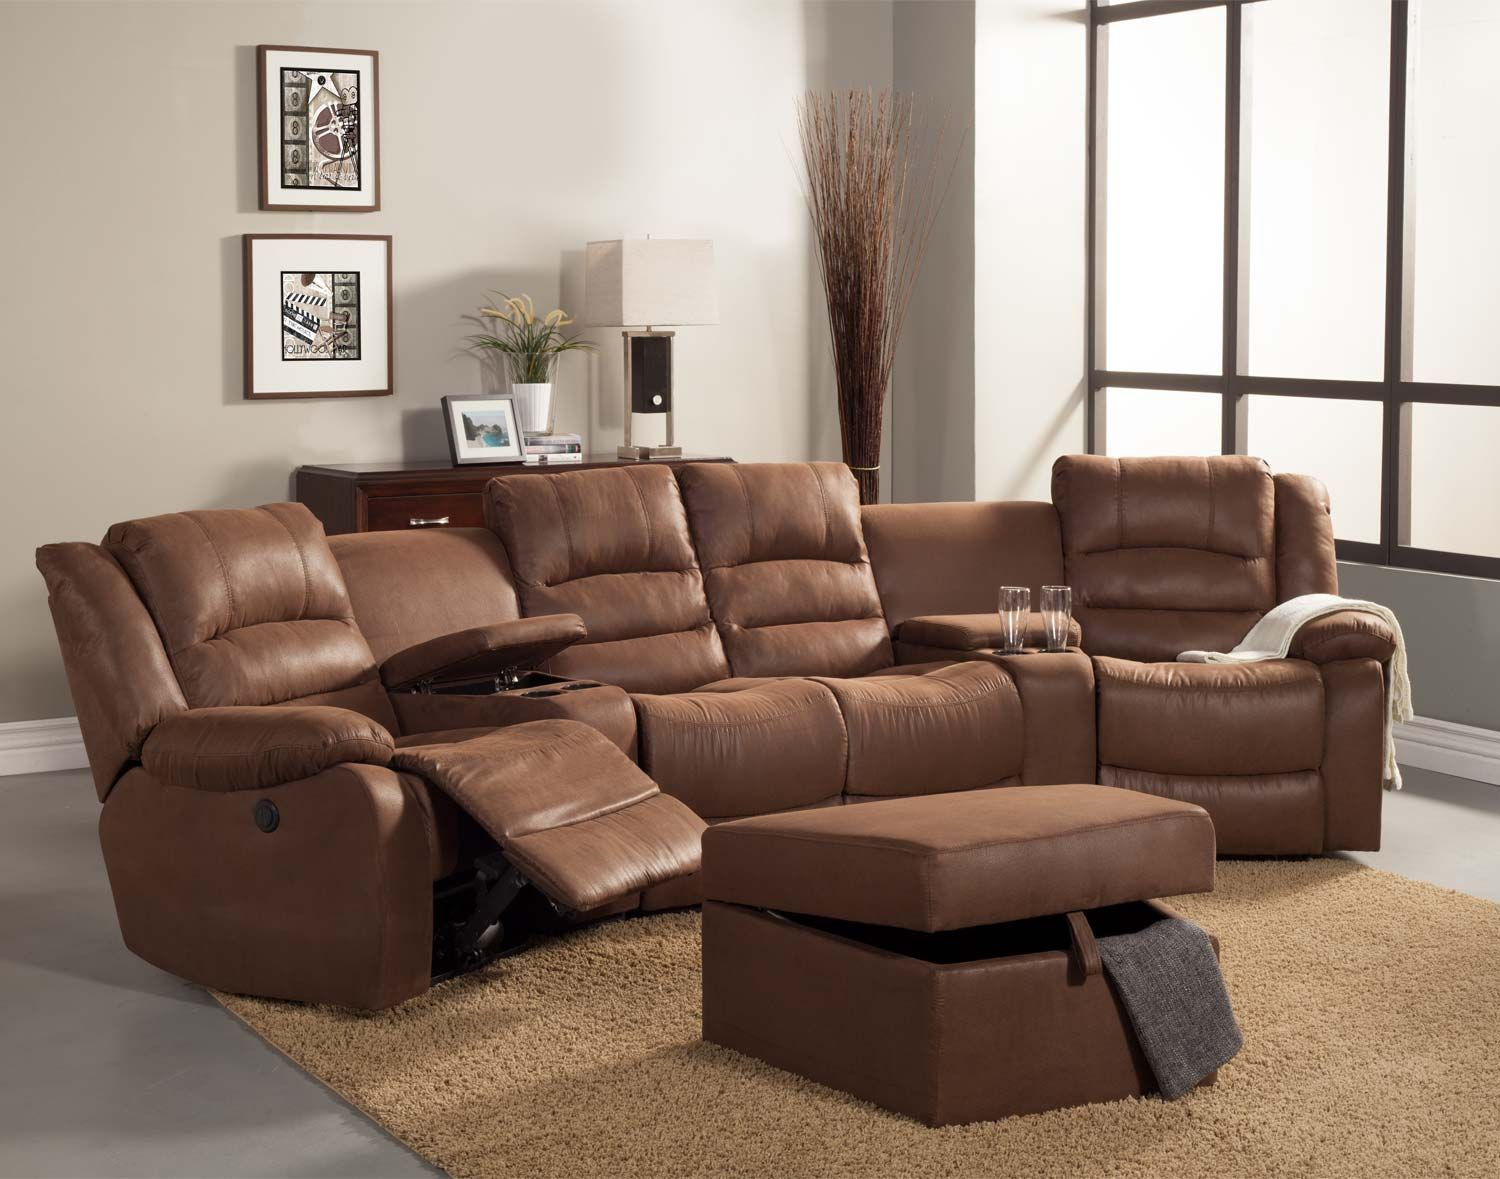 Homelegance Tucker Sectional Sofa Set Brown Bomber